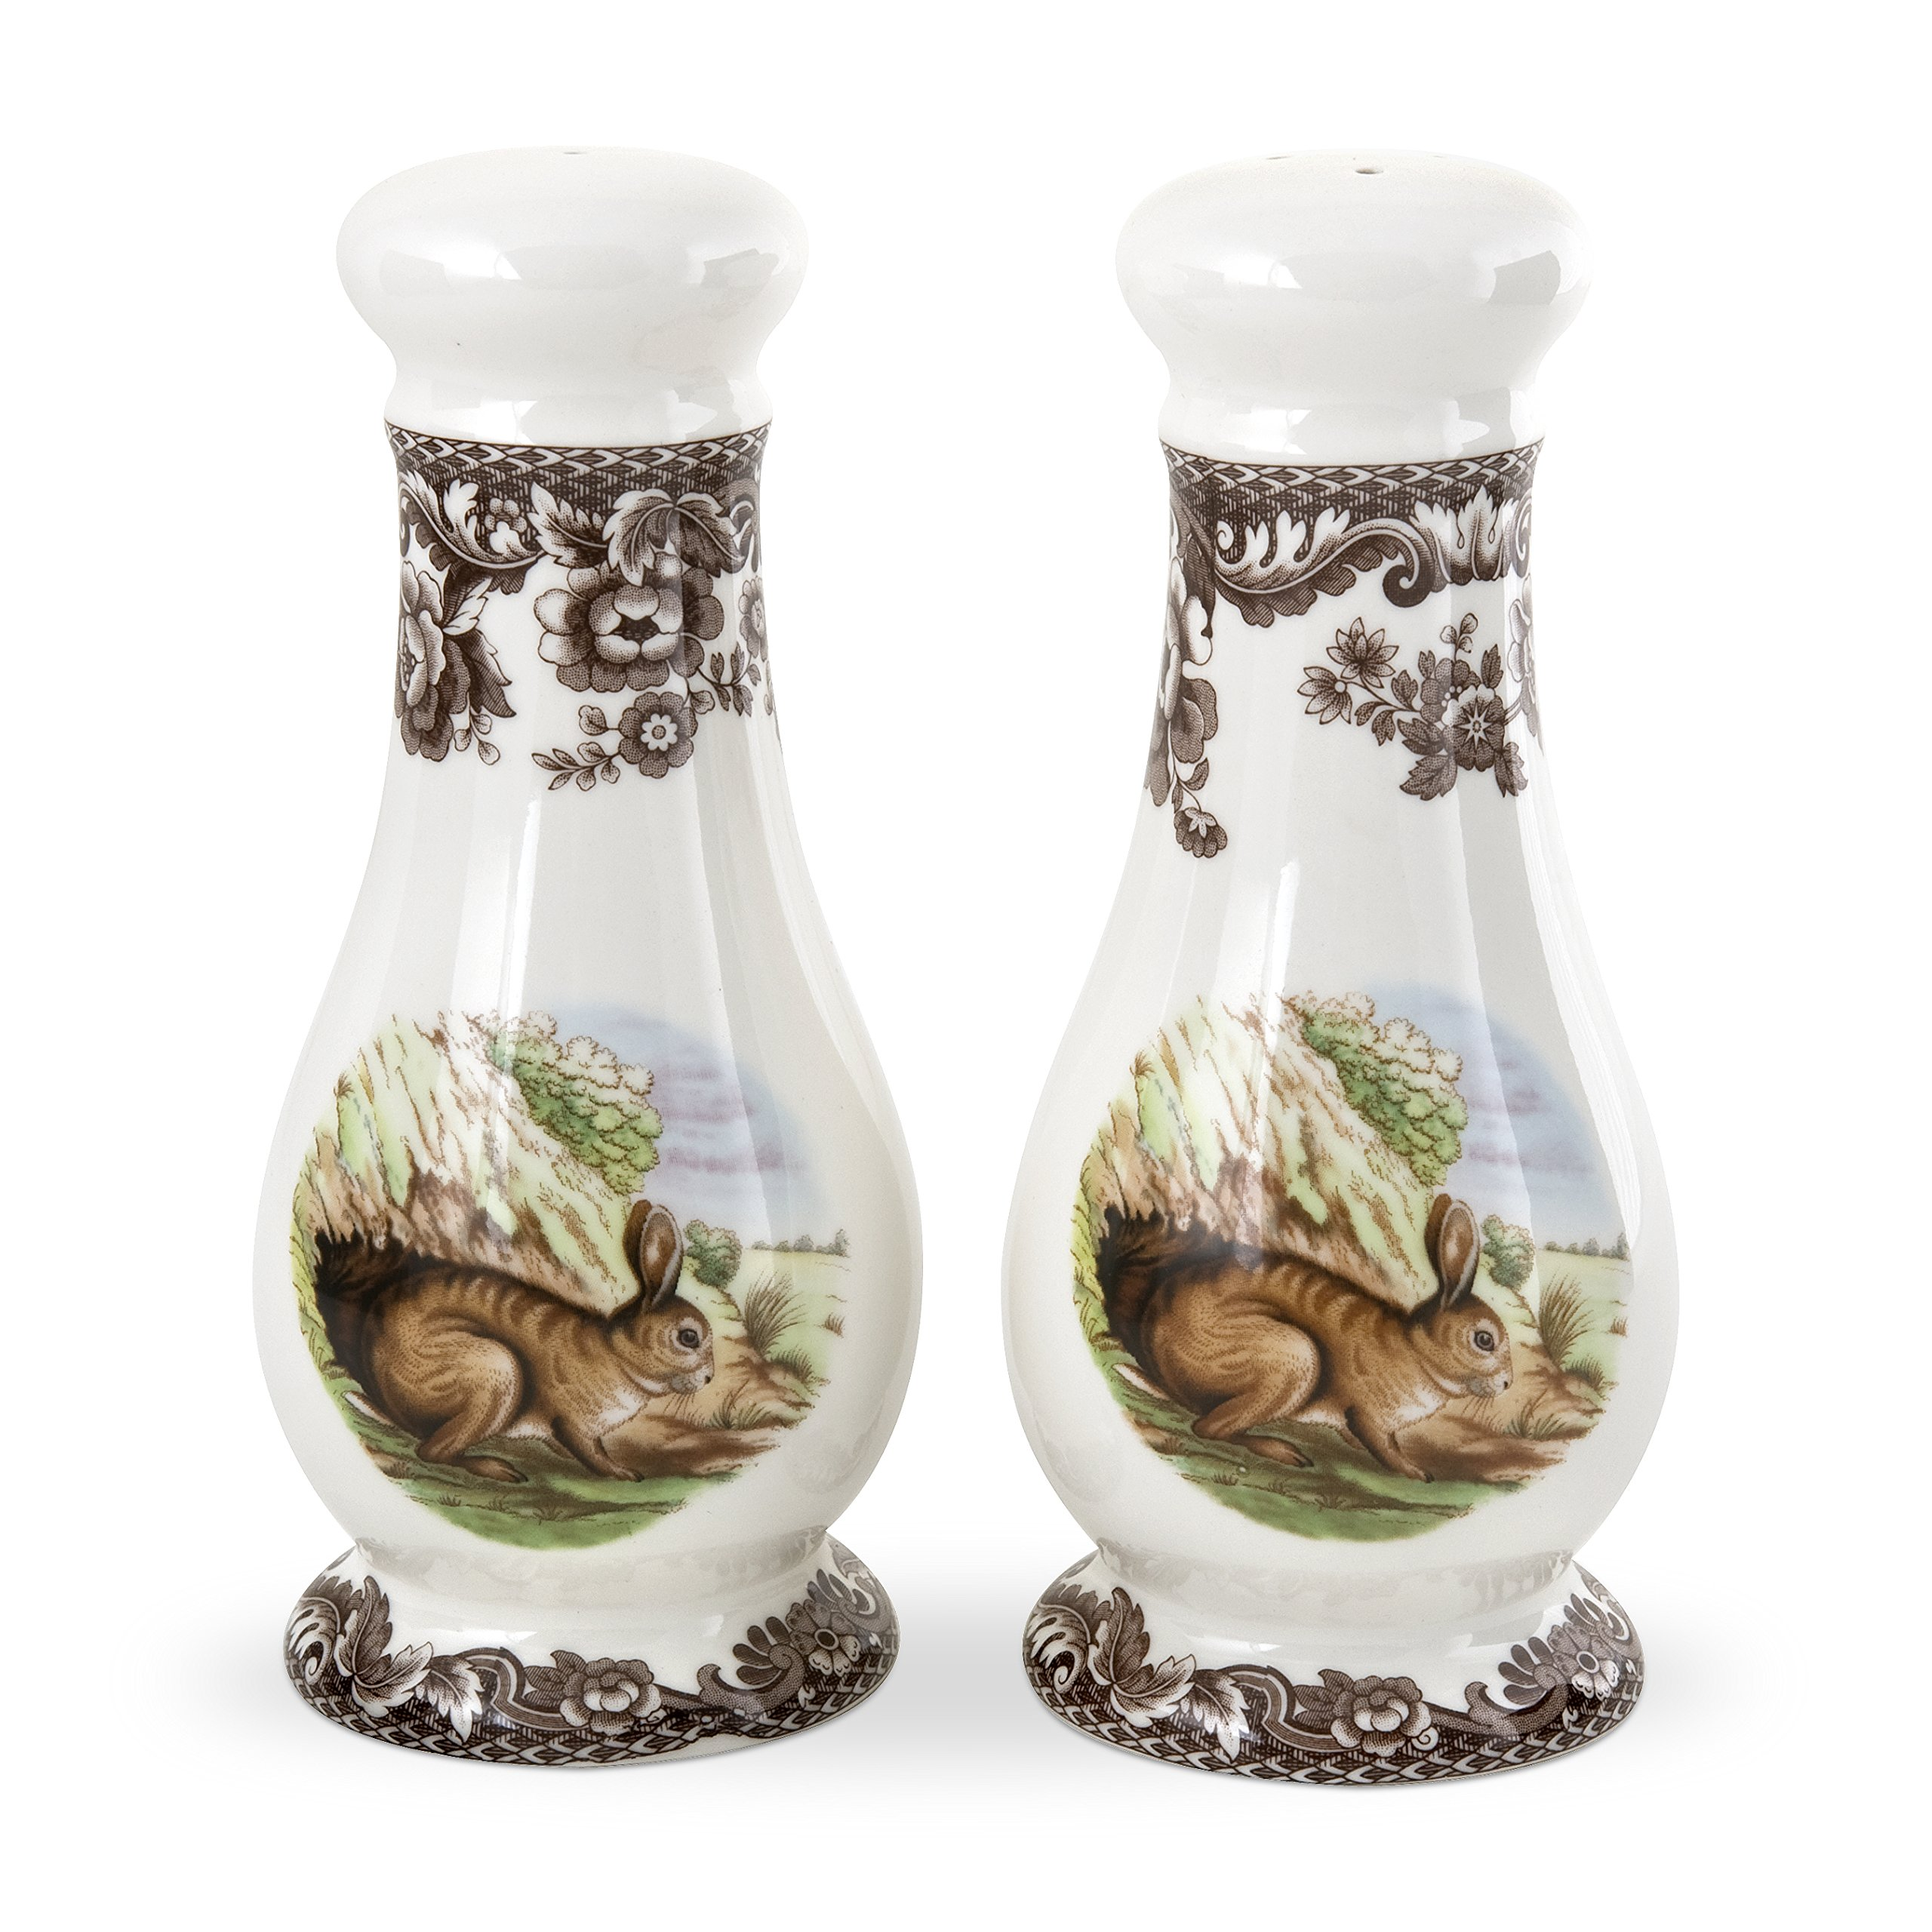 Spode Woodland Rabbit Salt and Pepper Shakers by Spode